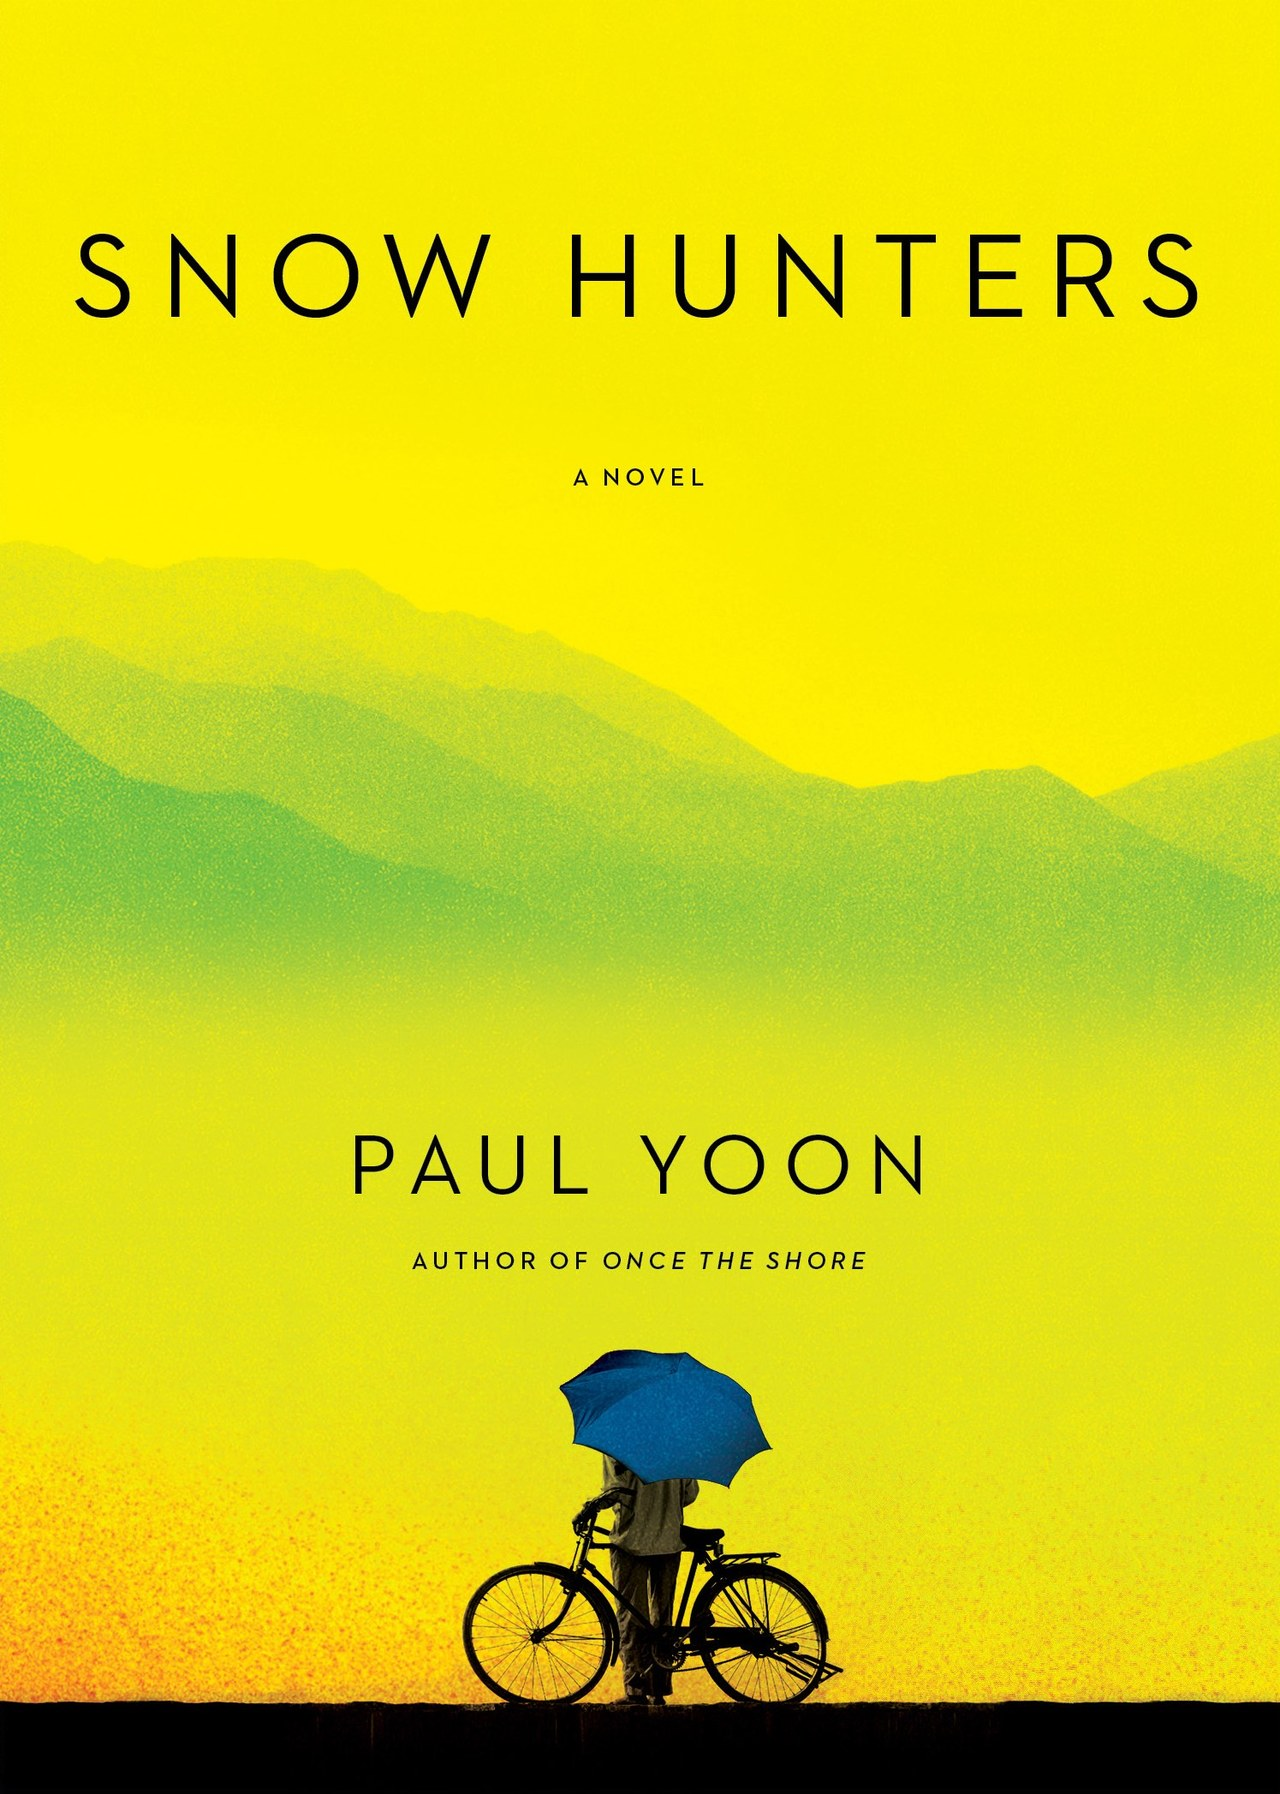 fiction illuminating history paul yoon s snow hunters the the snow hunters by paul yoon hardcover 22 00 simon schuster